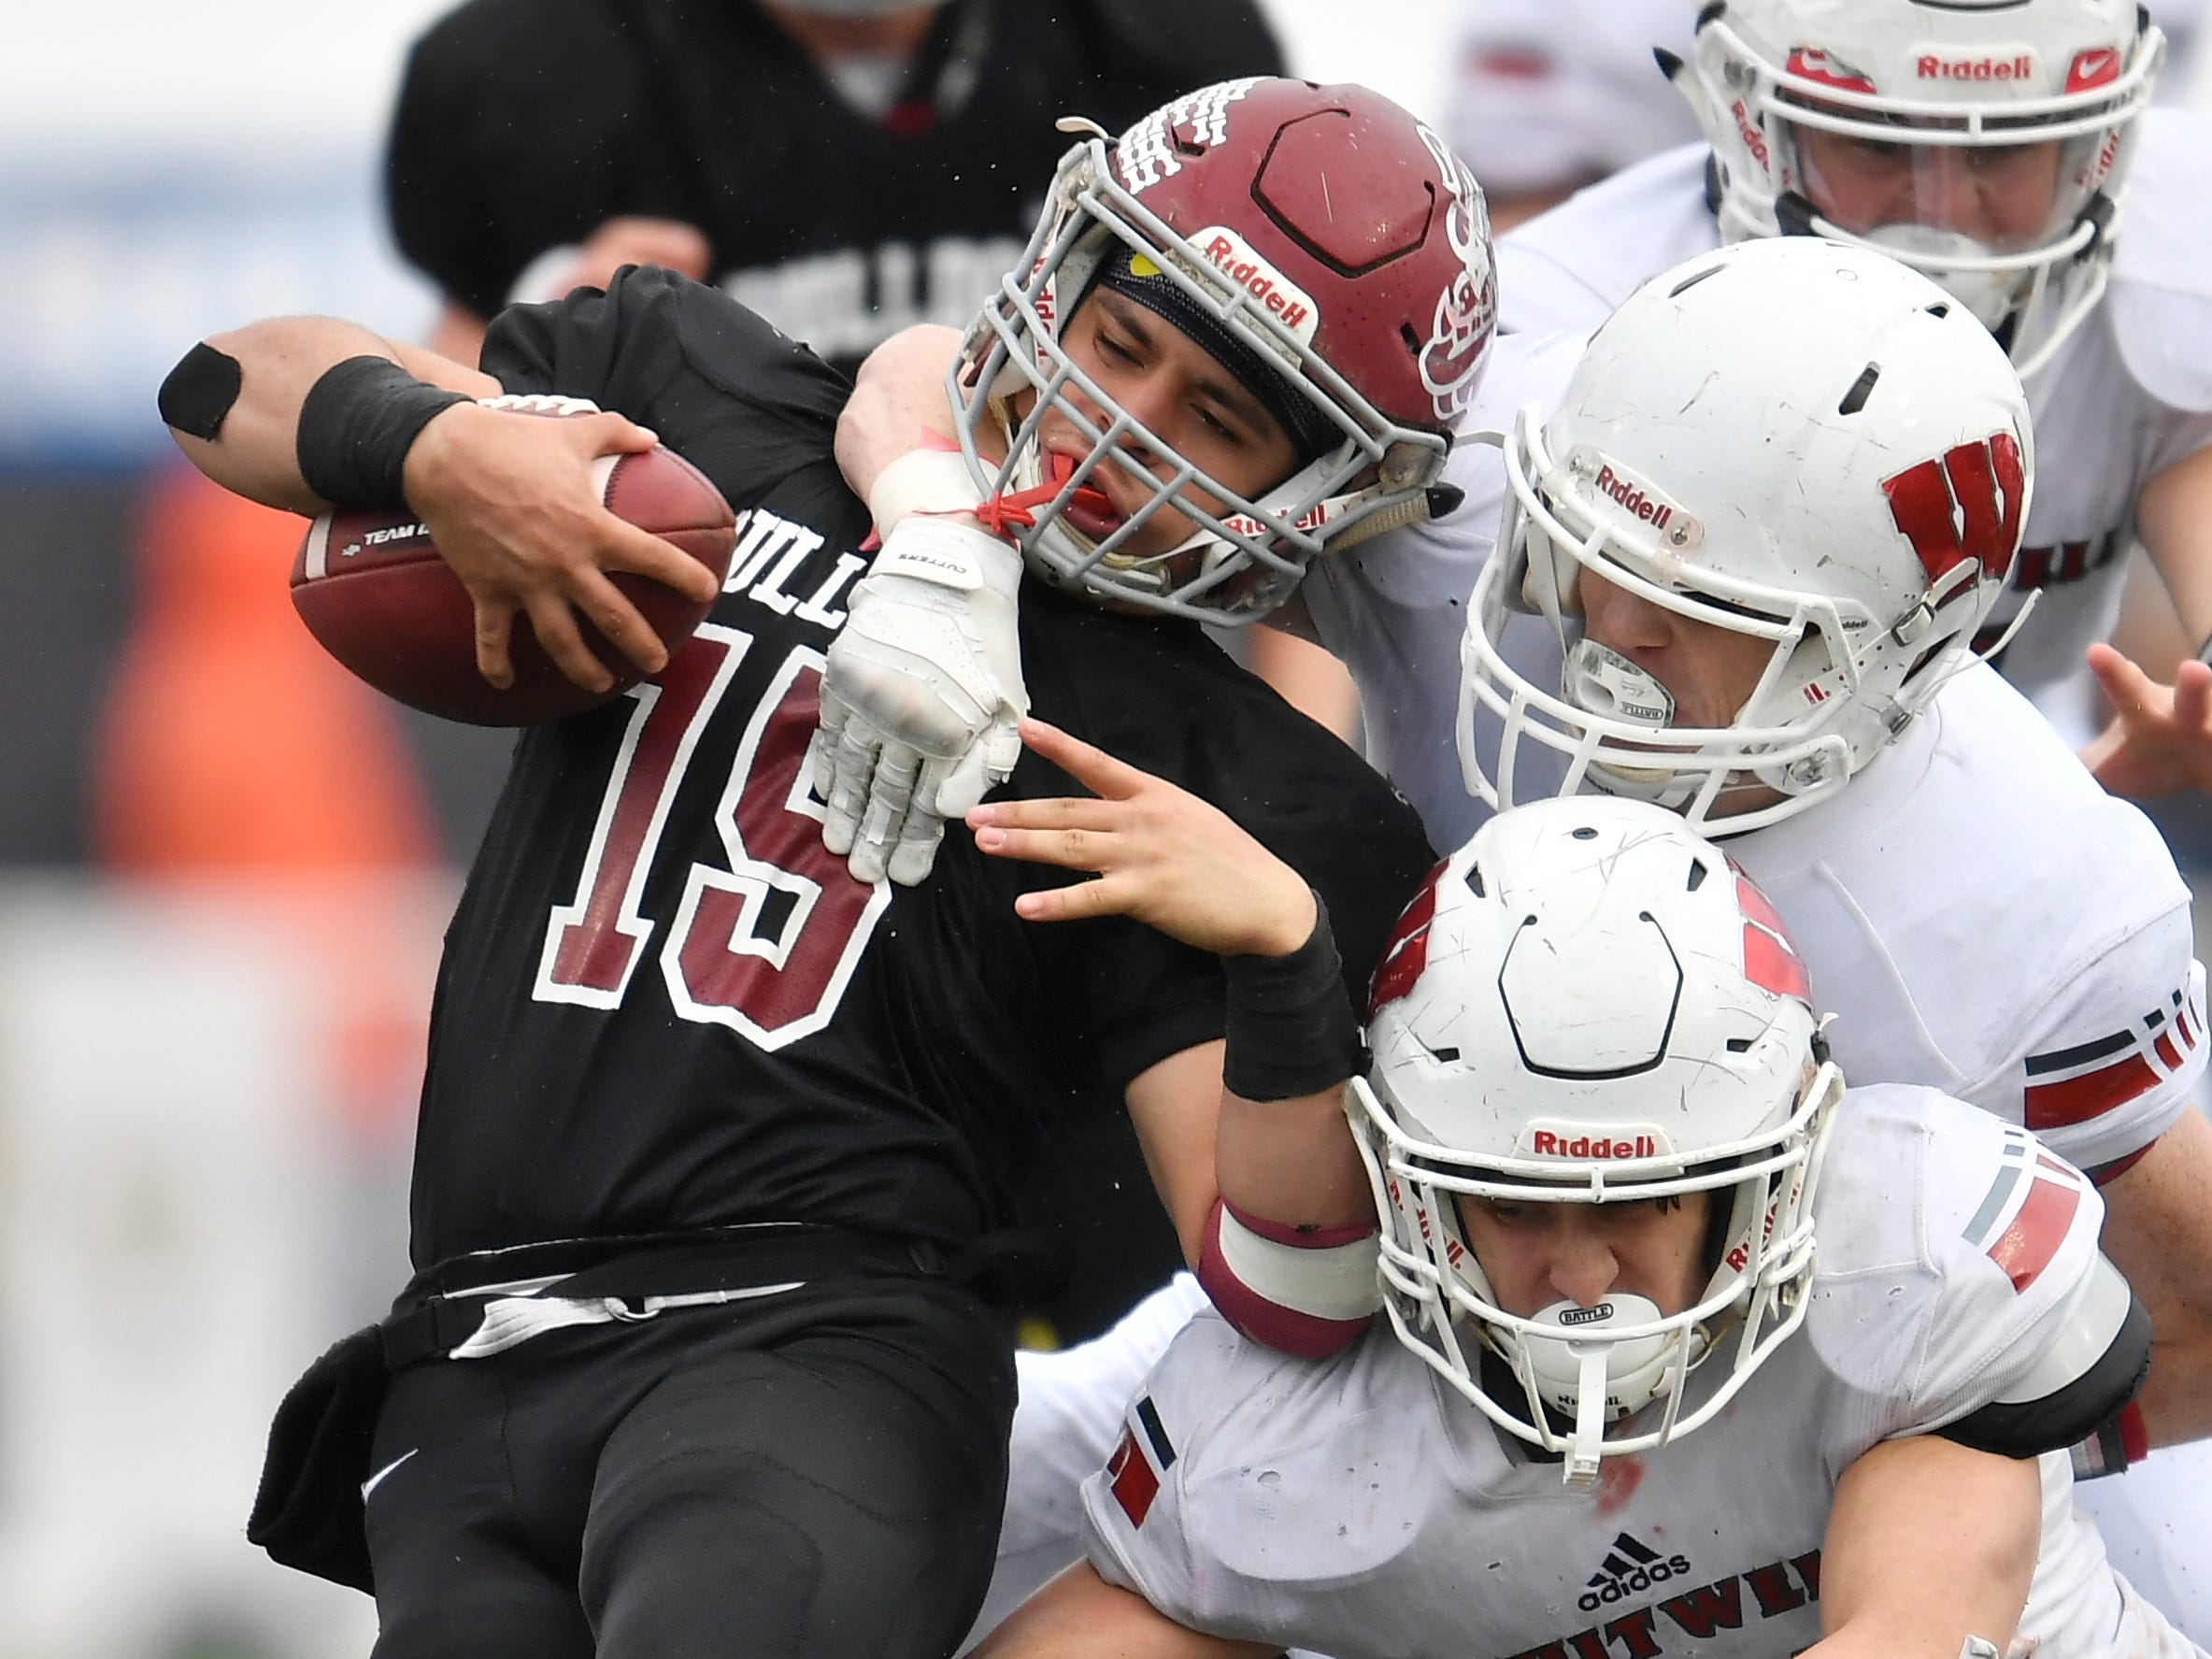 Cornersville's Cameron Whitaker (15) is brought down by Whitwell defenders in the third quarter at the Class I-A BlueCross Bowl state championship at Tennessee Tech's Tucker Stadium in Cookeville, Tenn., on Saturday, Dec. 1, 2018.